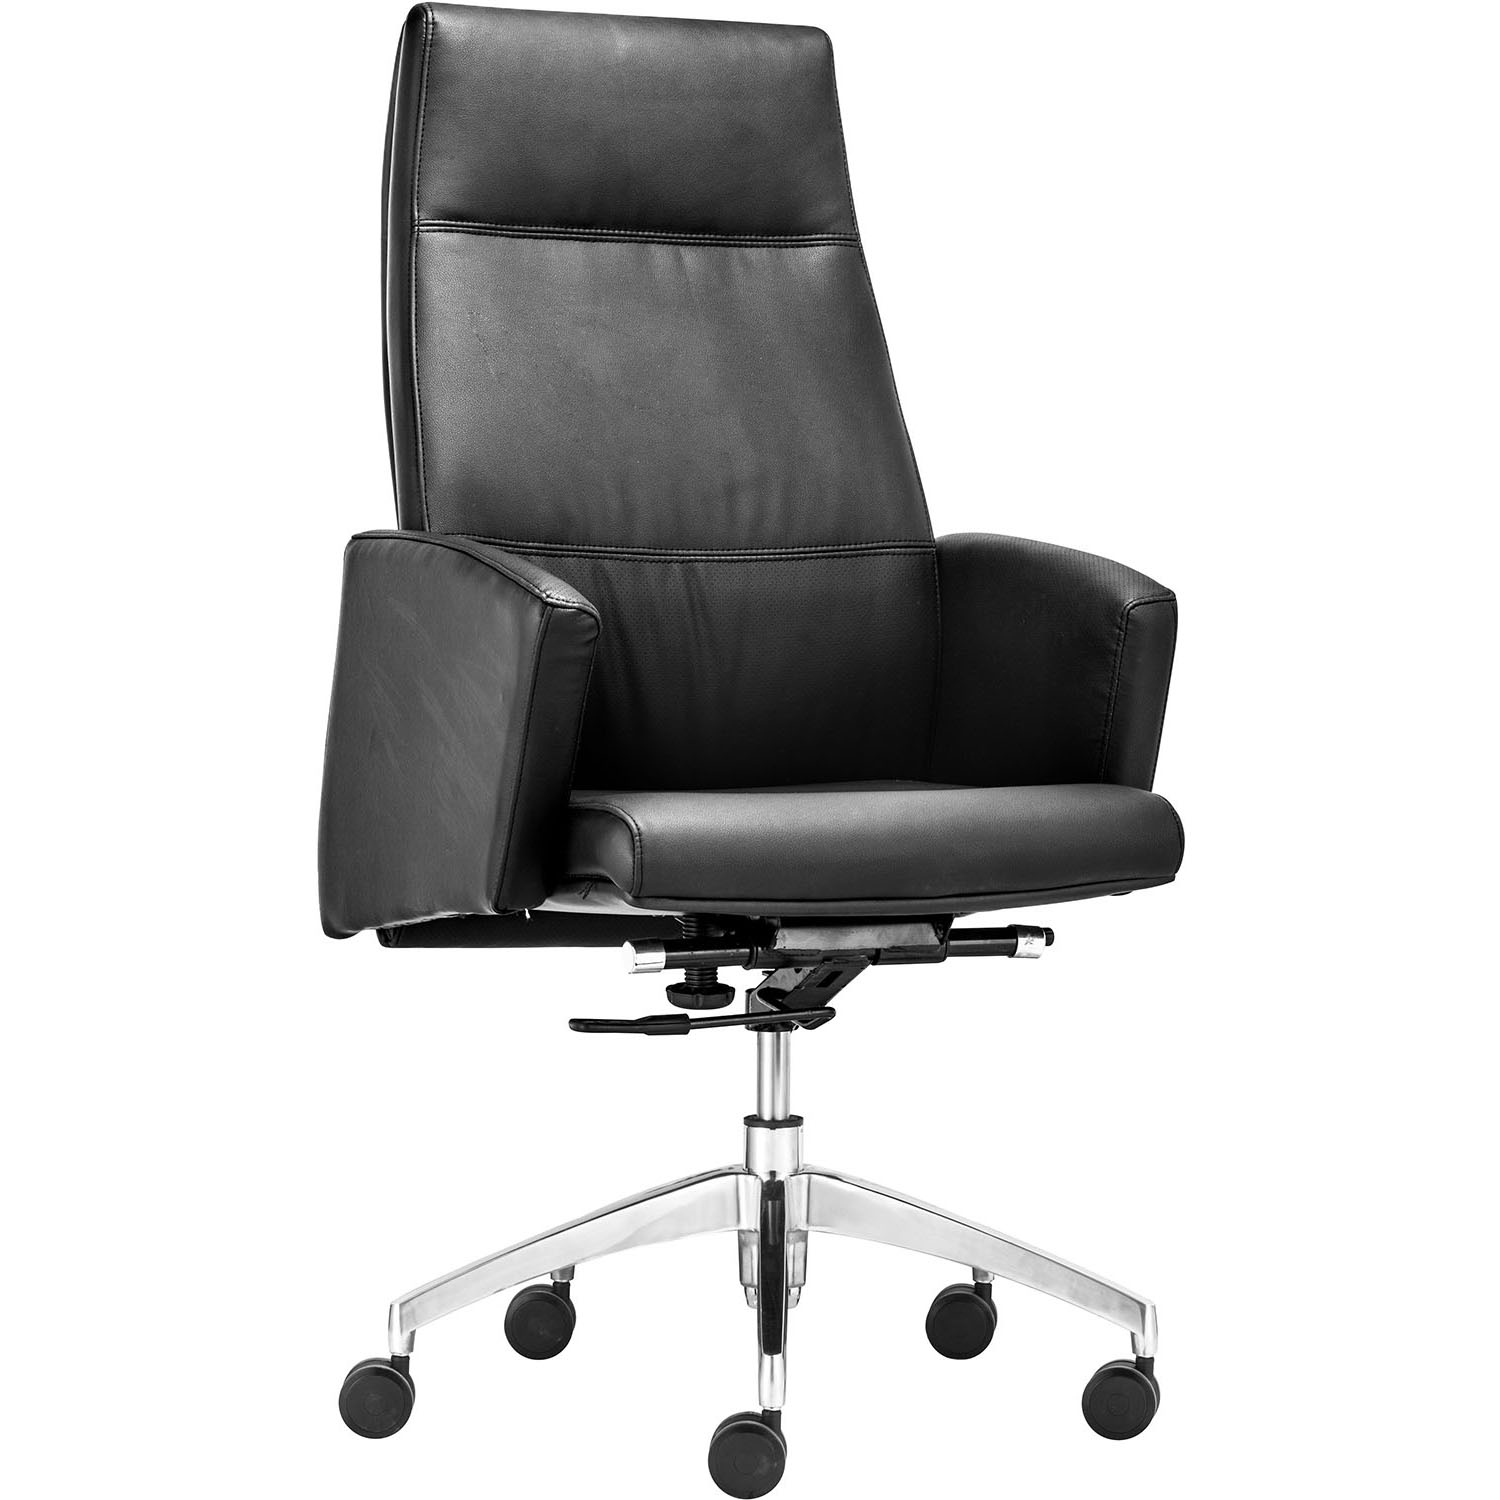 Chieftain High Back Adjustable Rolling Office Chair 206080, 206081